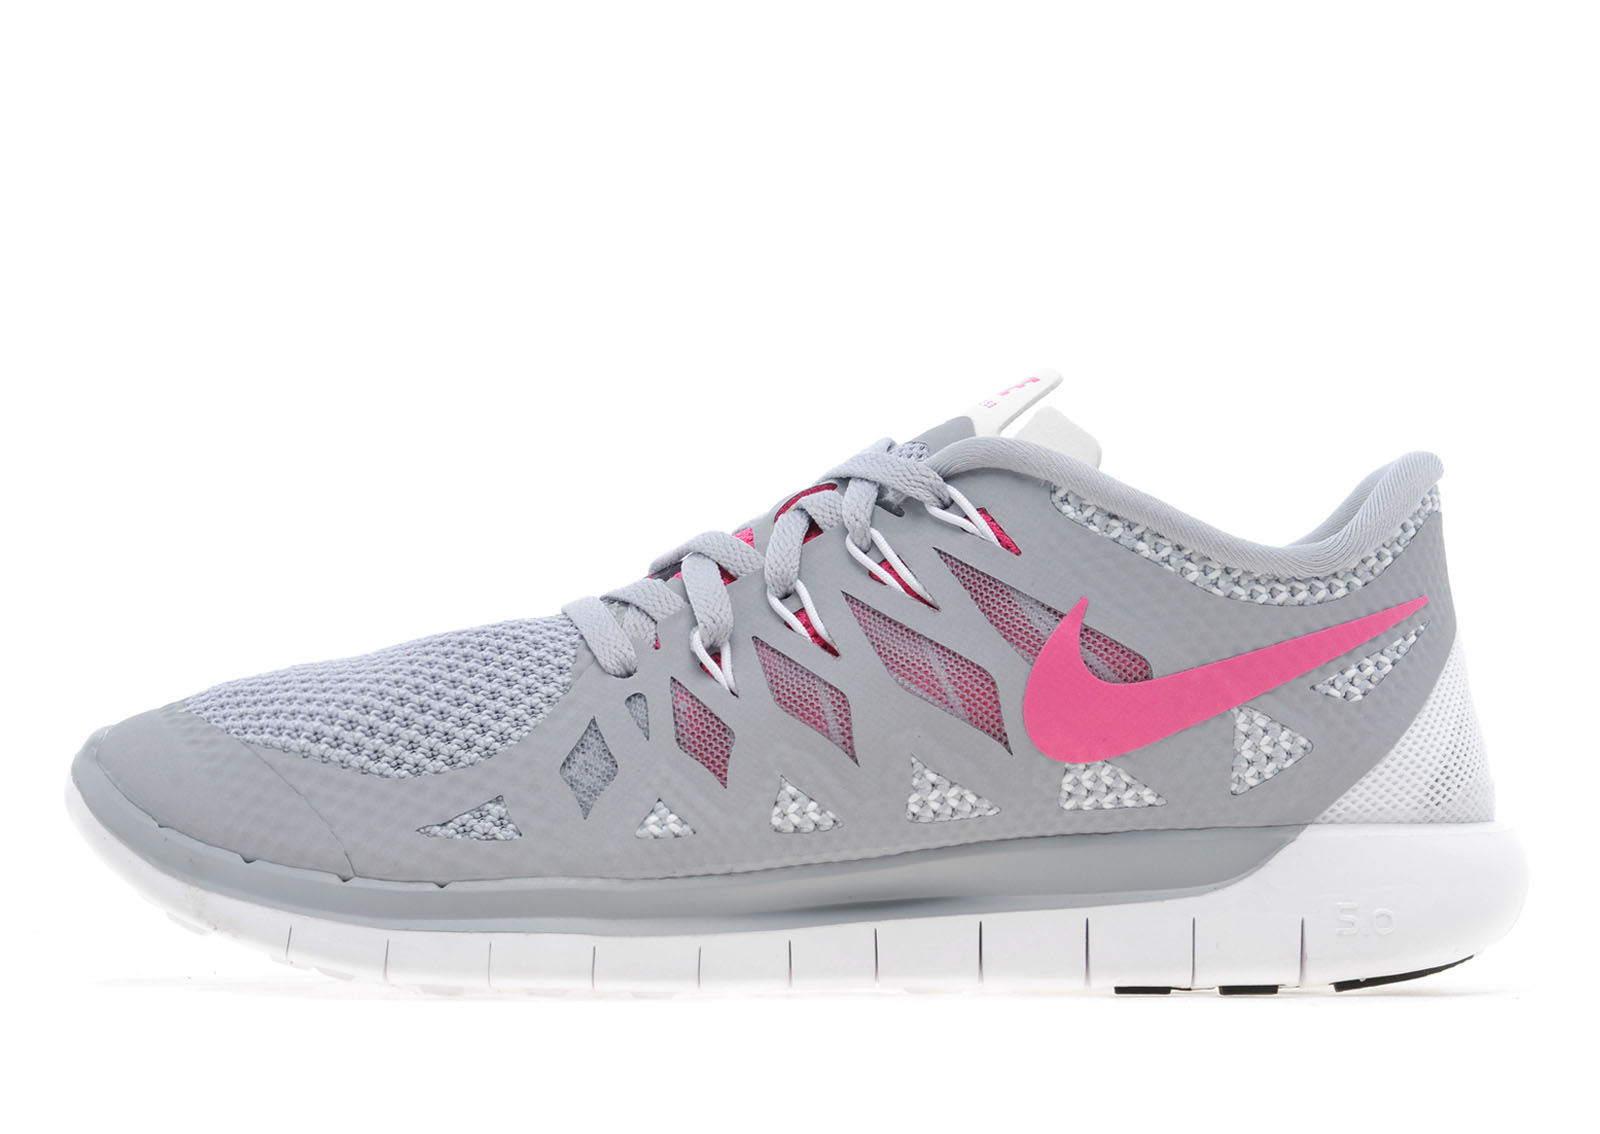 e2acf1cbf728 Nike Free Pink And Grey